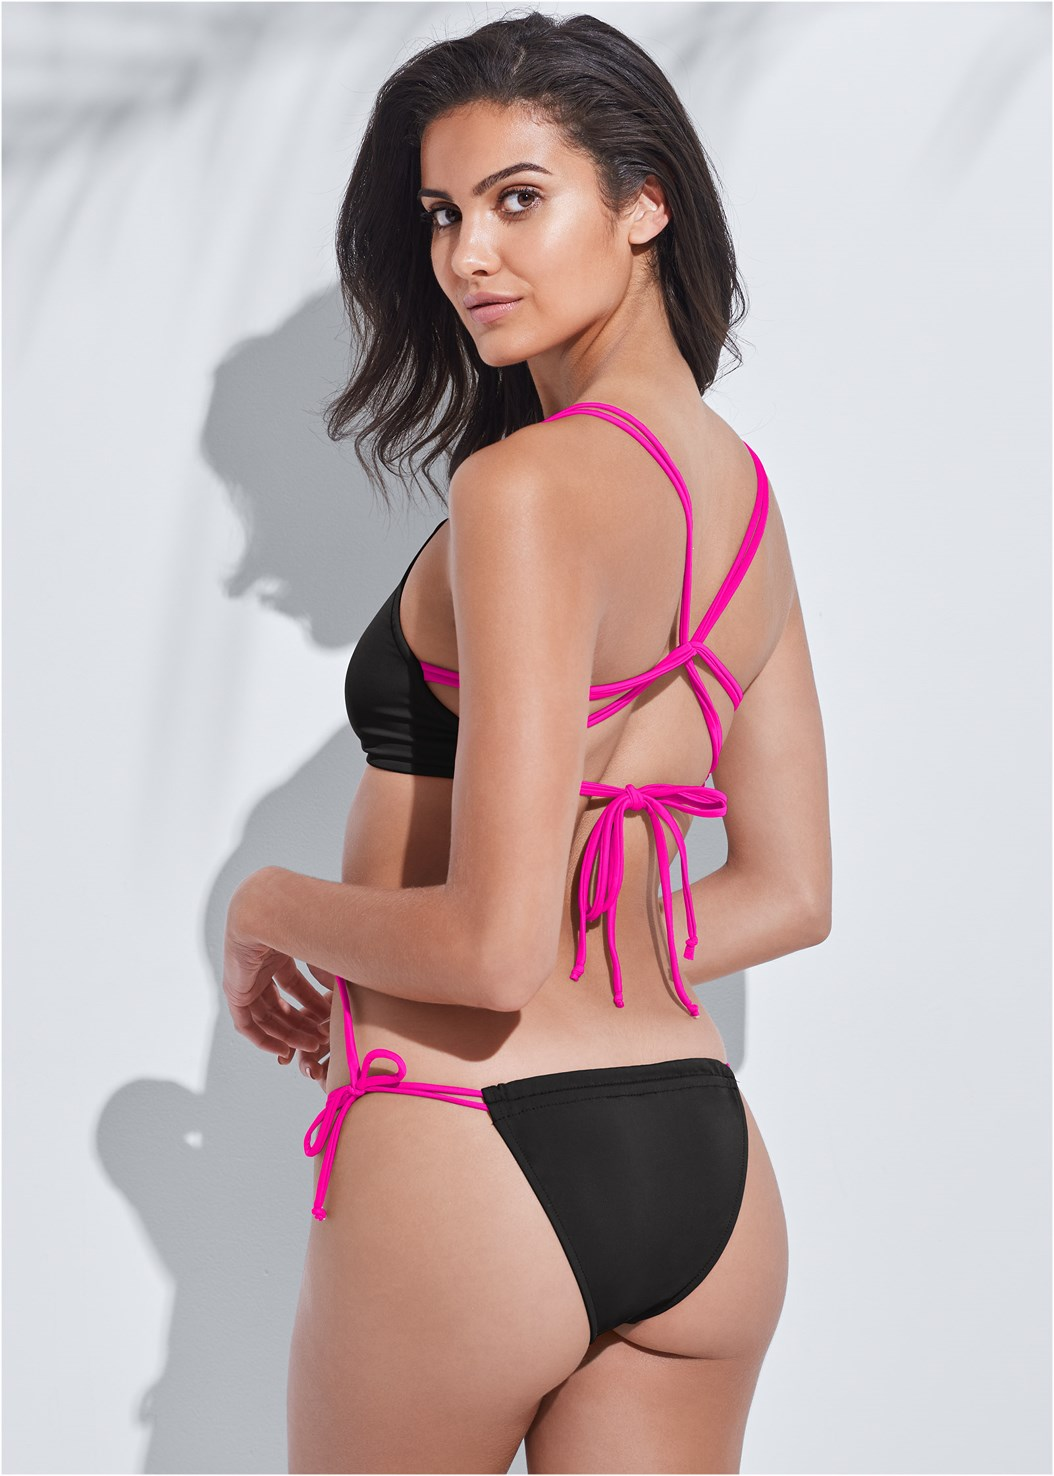 Sports Illustrated Swim™ Party In The Back Sport Top,Sports Illustrated Swim™ Micro Adjustable Bottom,Sports Illustrated Swim™ Brazilian Crisscross Bottom,Sports Illustrated Swim™ Tie Side String Bottom,Sports Illustrated Swim™ Low Rise Brief